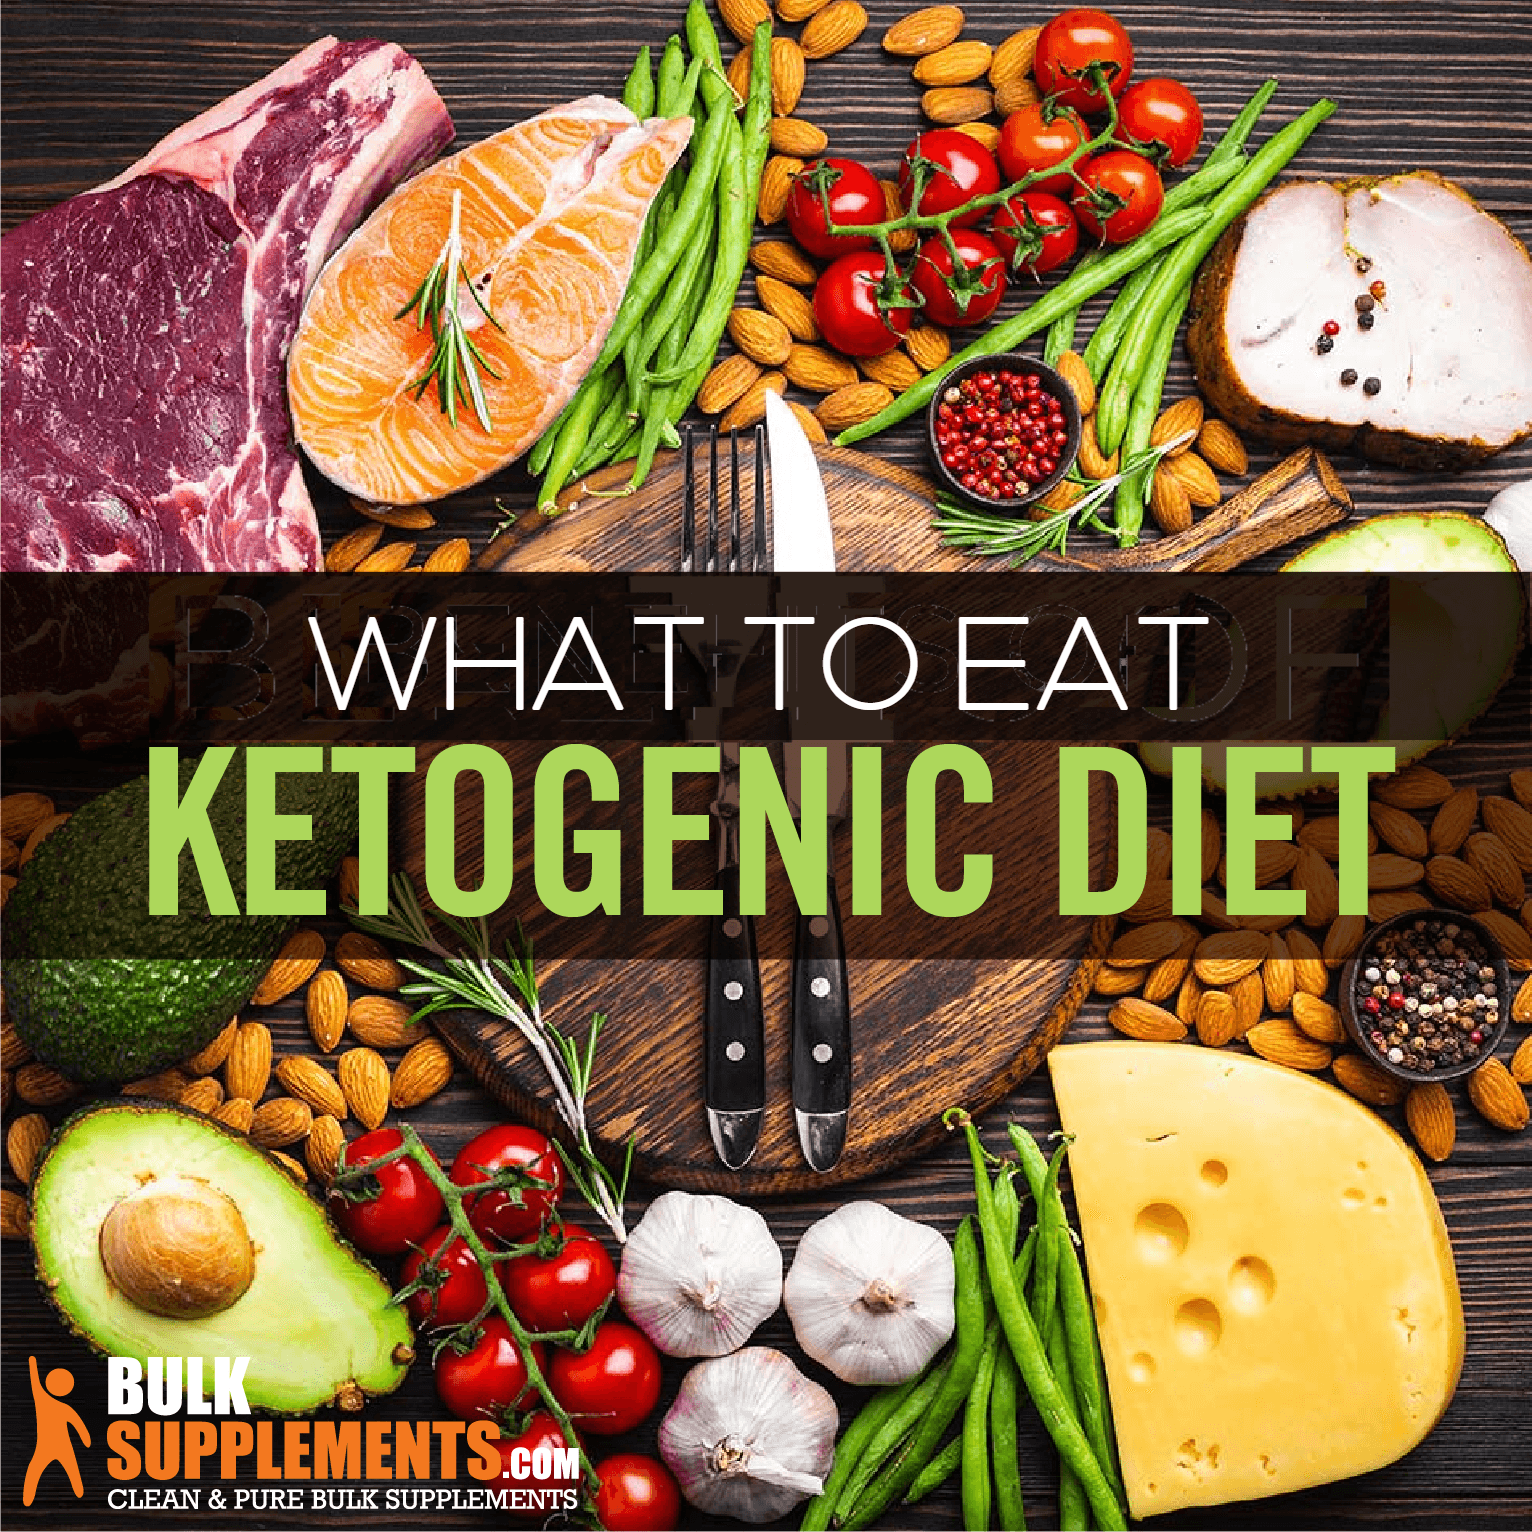 Ketogenic Diet Benefits, What to Eat, What to Avoid